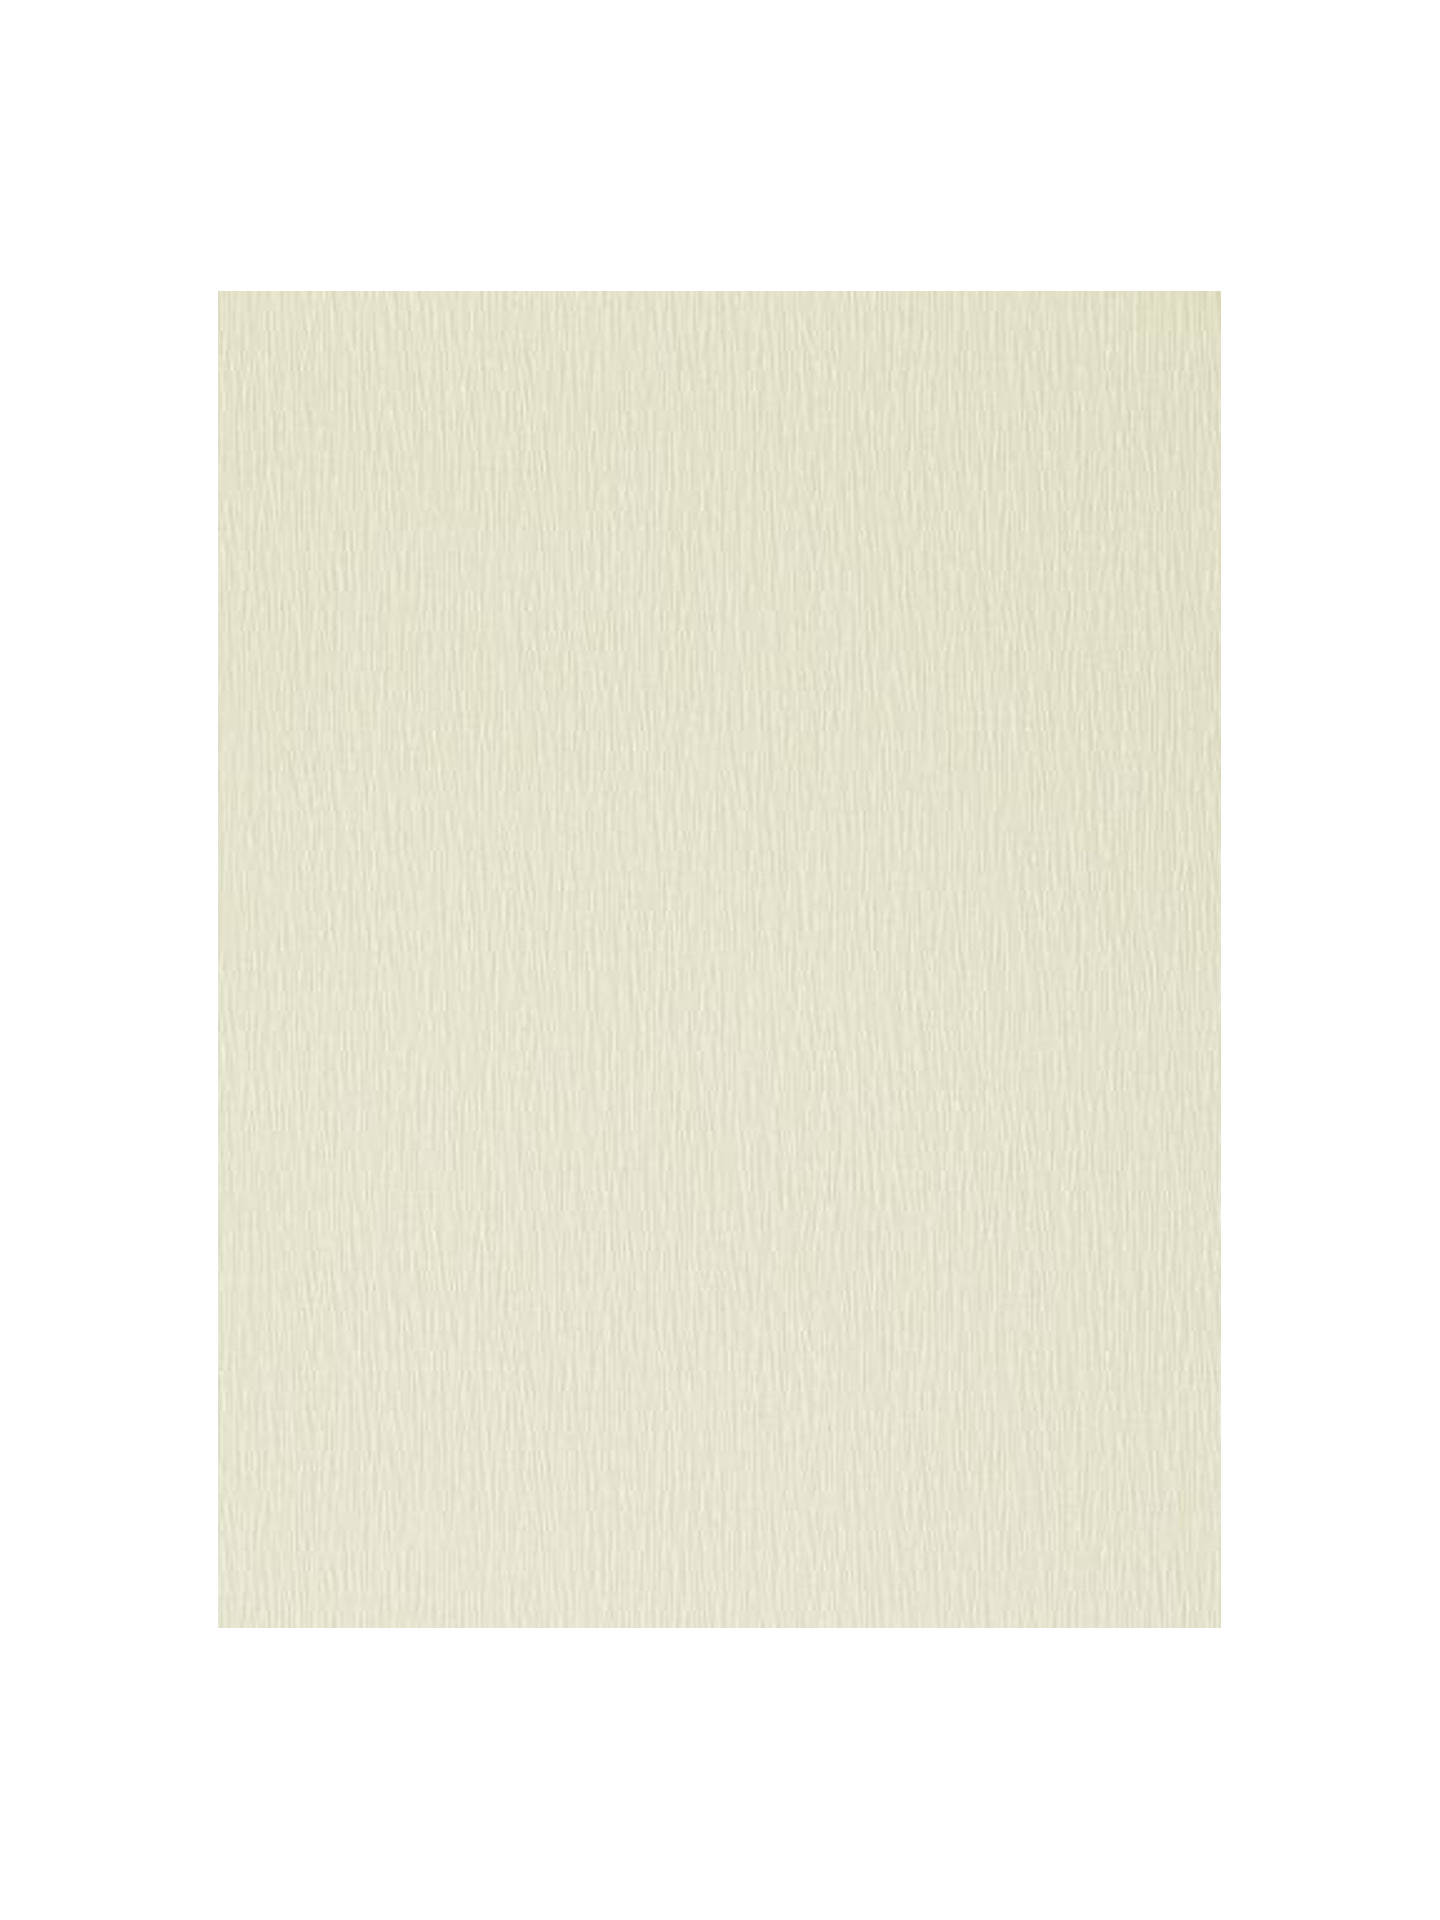 Buy Scion Bark Paste the Wall Wallpaper, 110870 Online at johnlewis.com